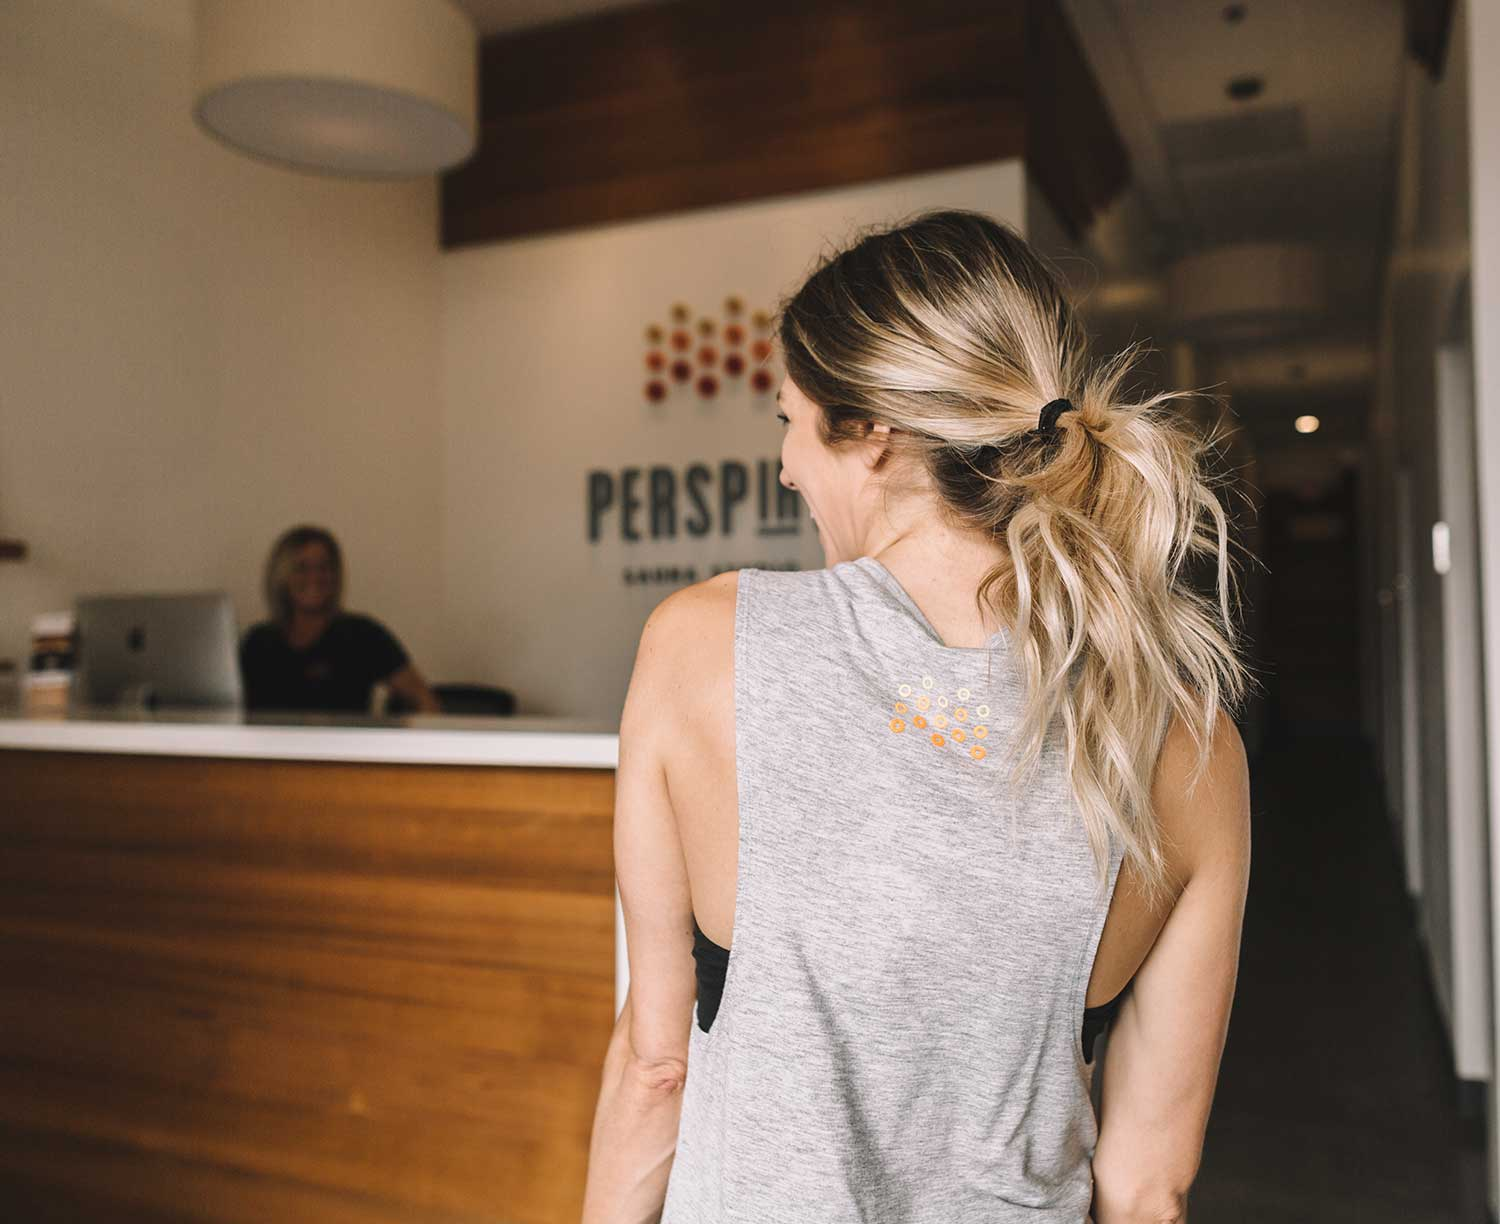 woman walking into perspire sauna studio in Laguna Niguel